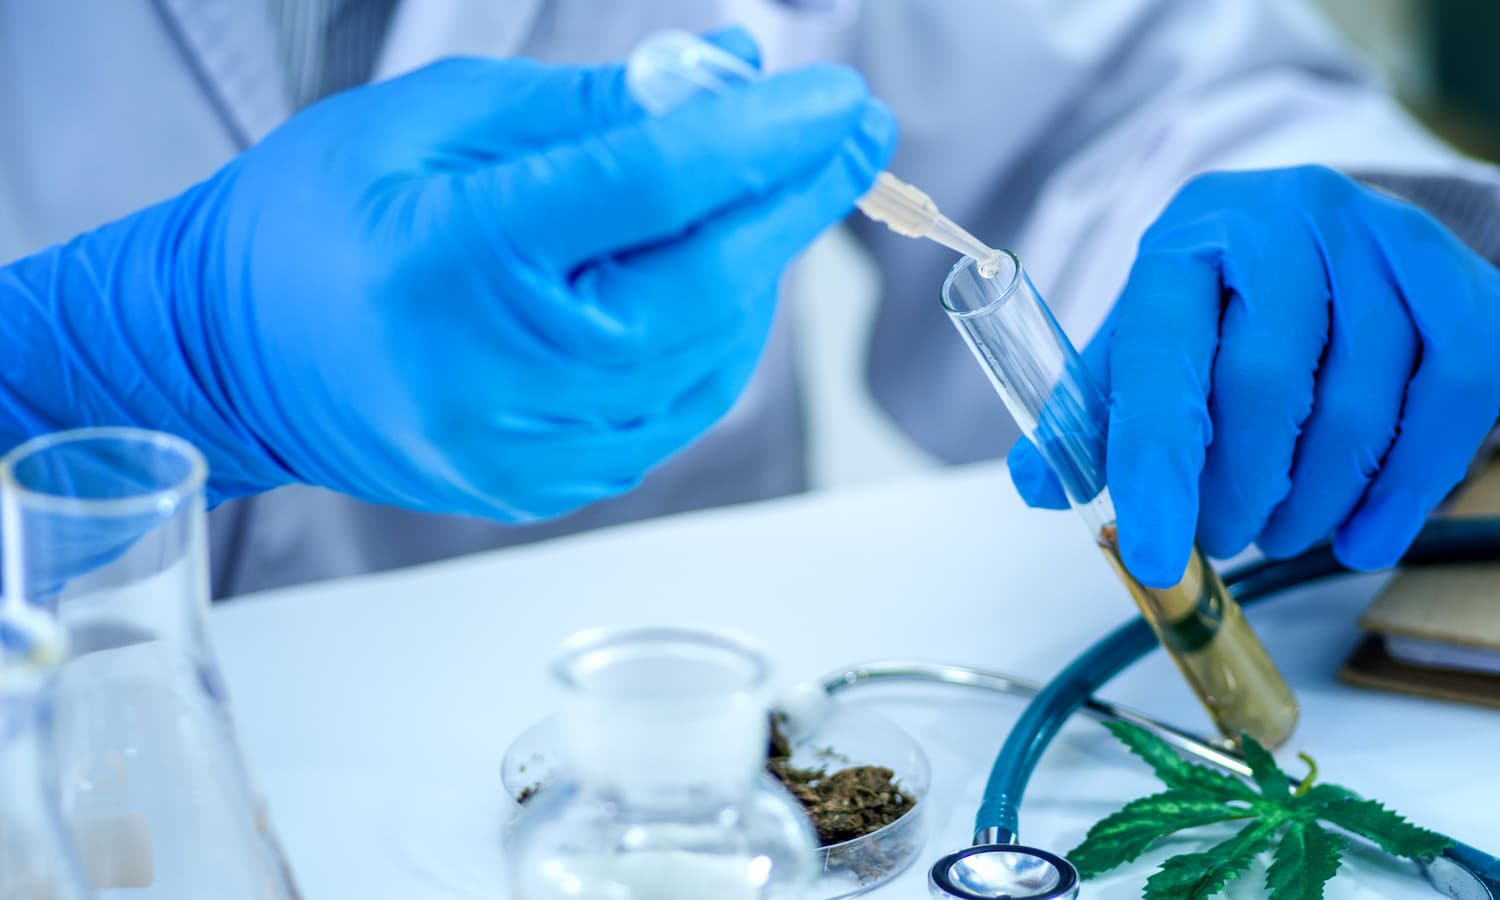 ICYMI: DEA And Cannabis Research Still Lousy Bedfellows